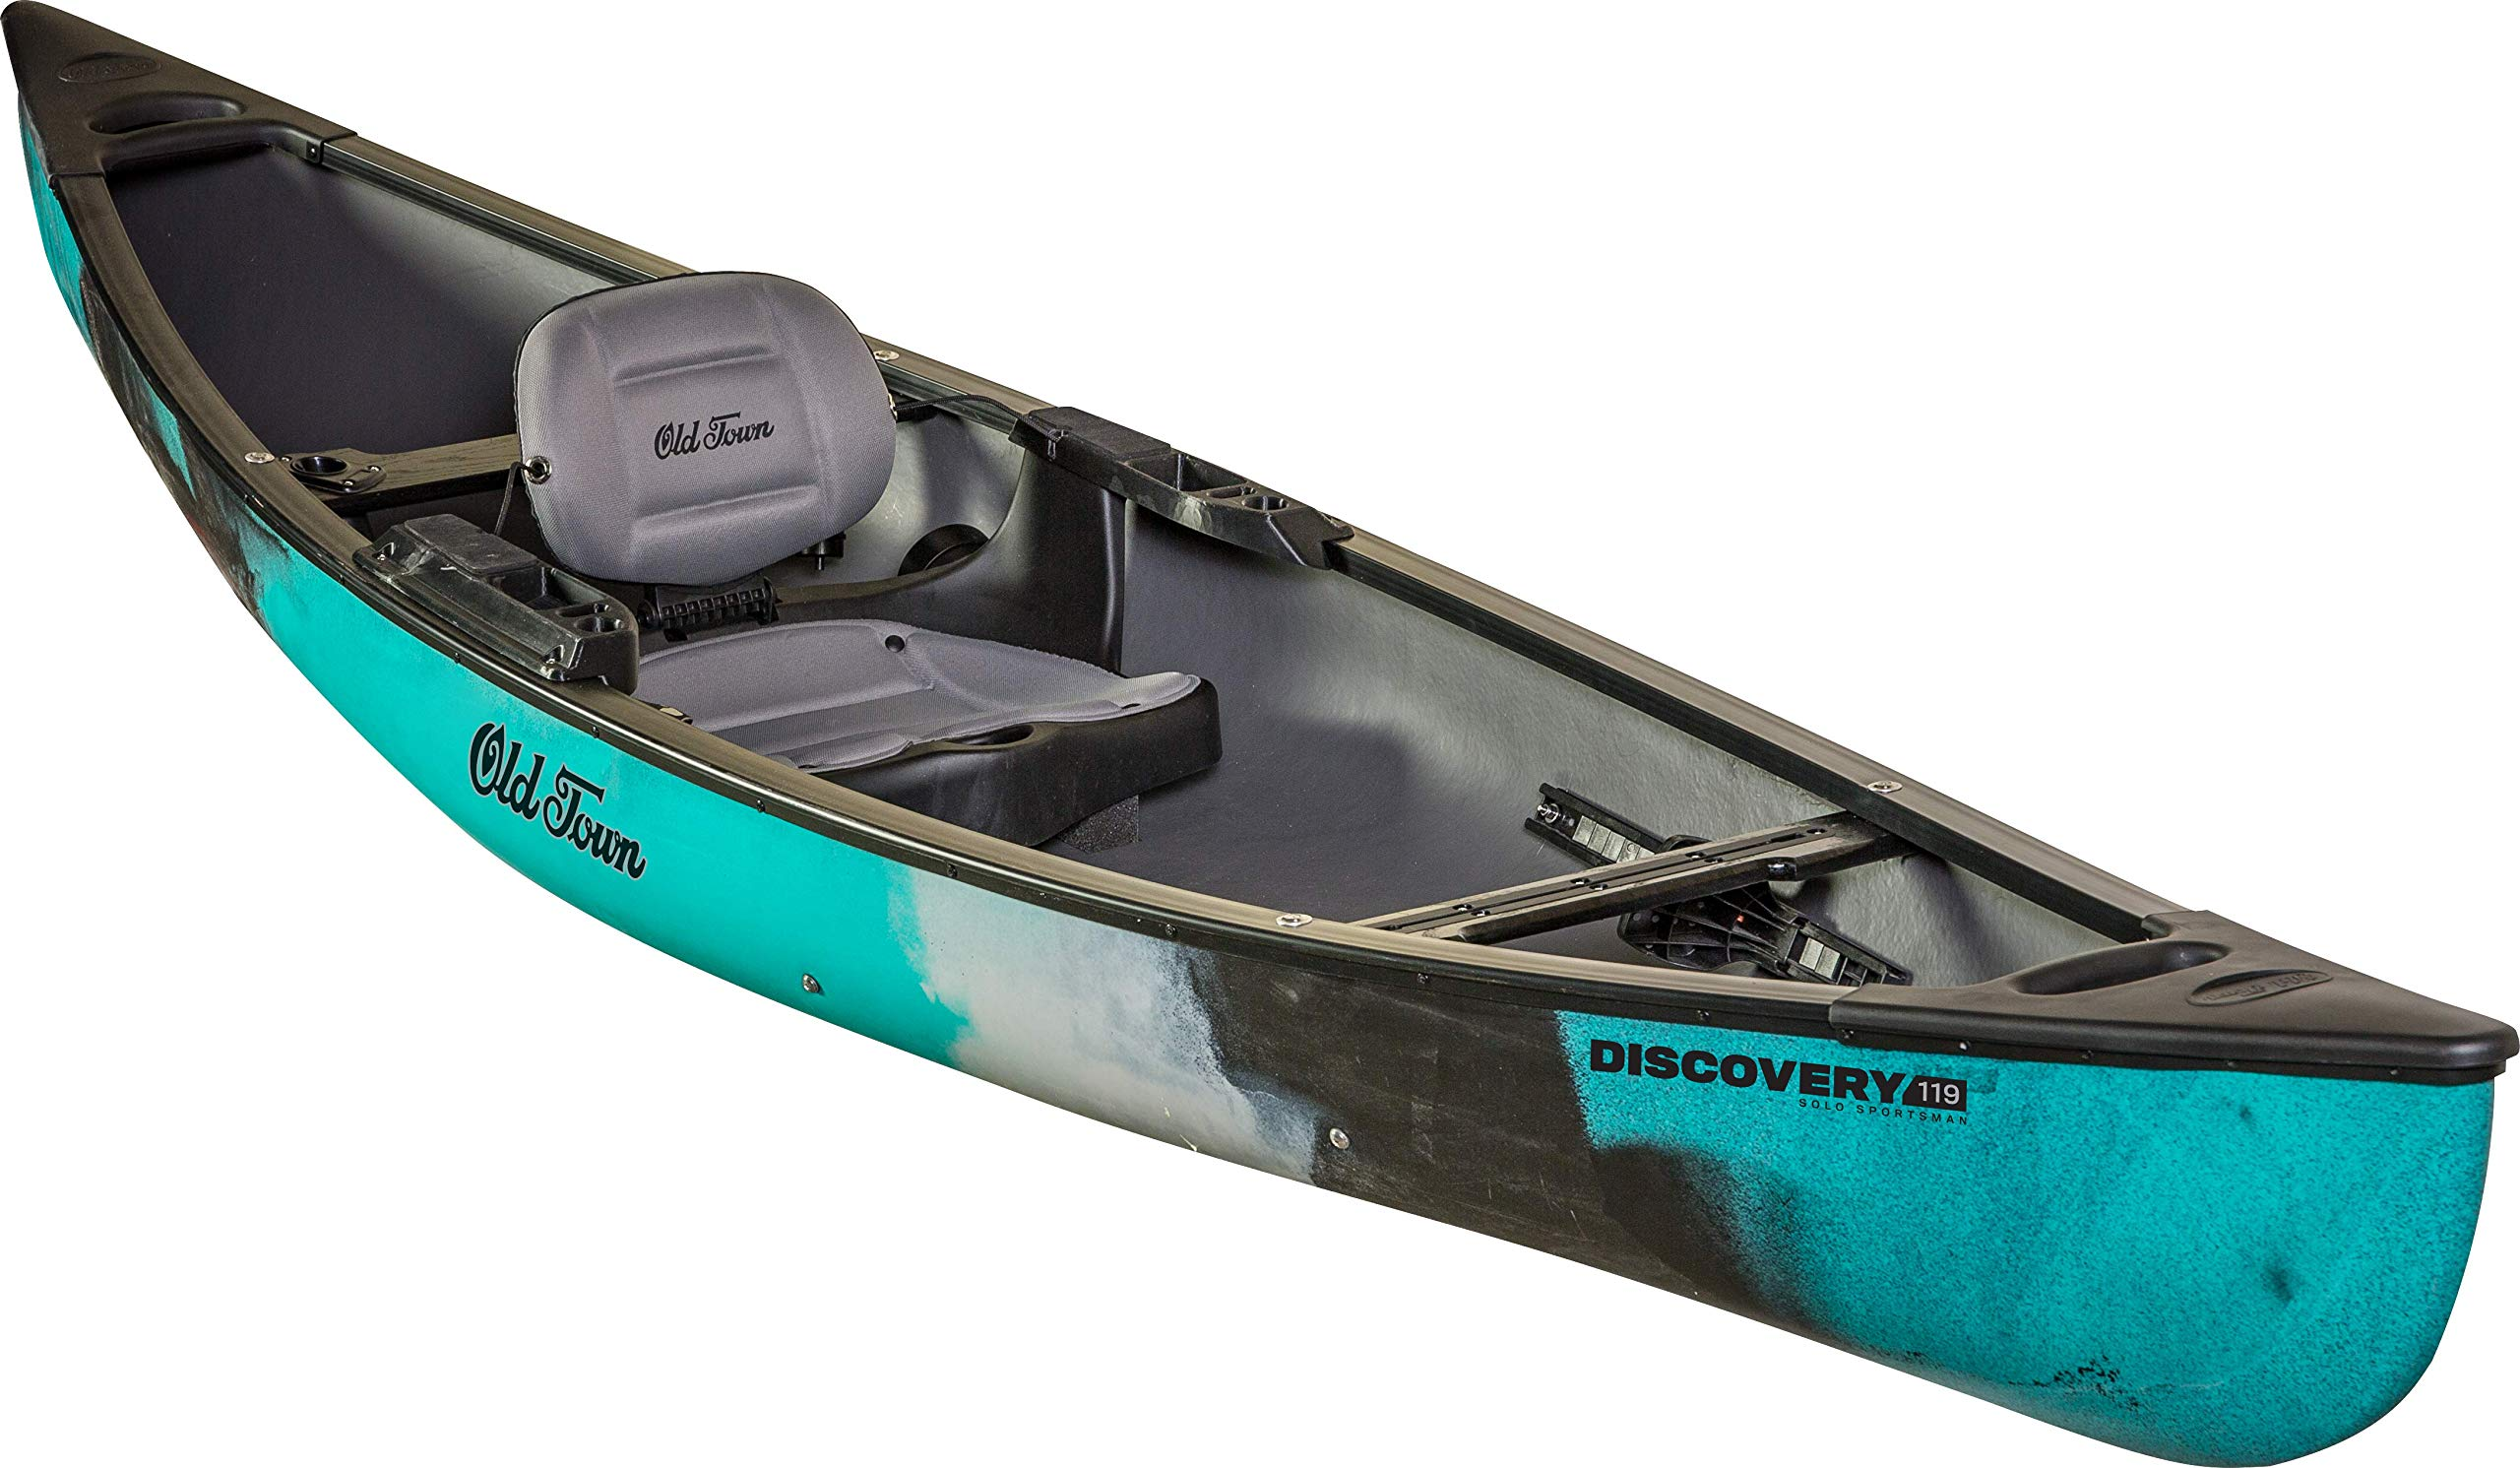 Old Town Discovery 119 Solo Sportsman Canoe (Photic) by Old Town Canoes & Kayaks